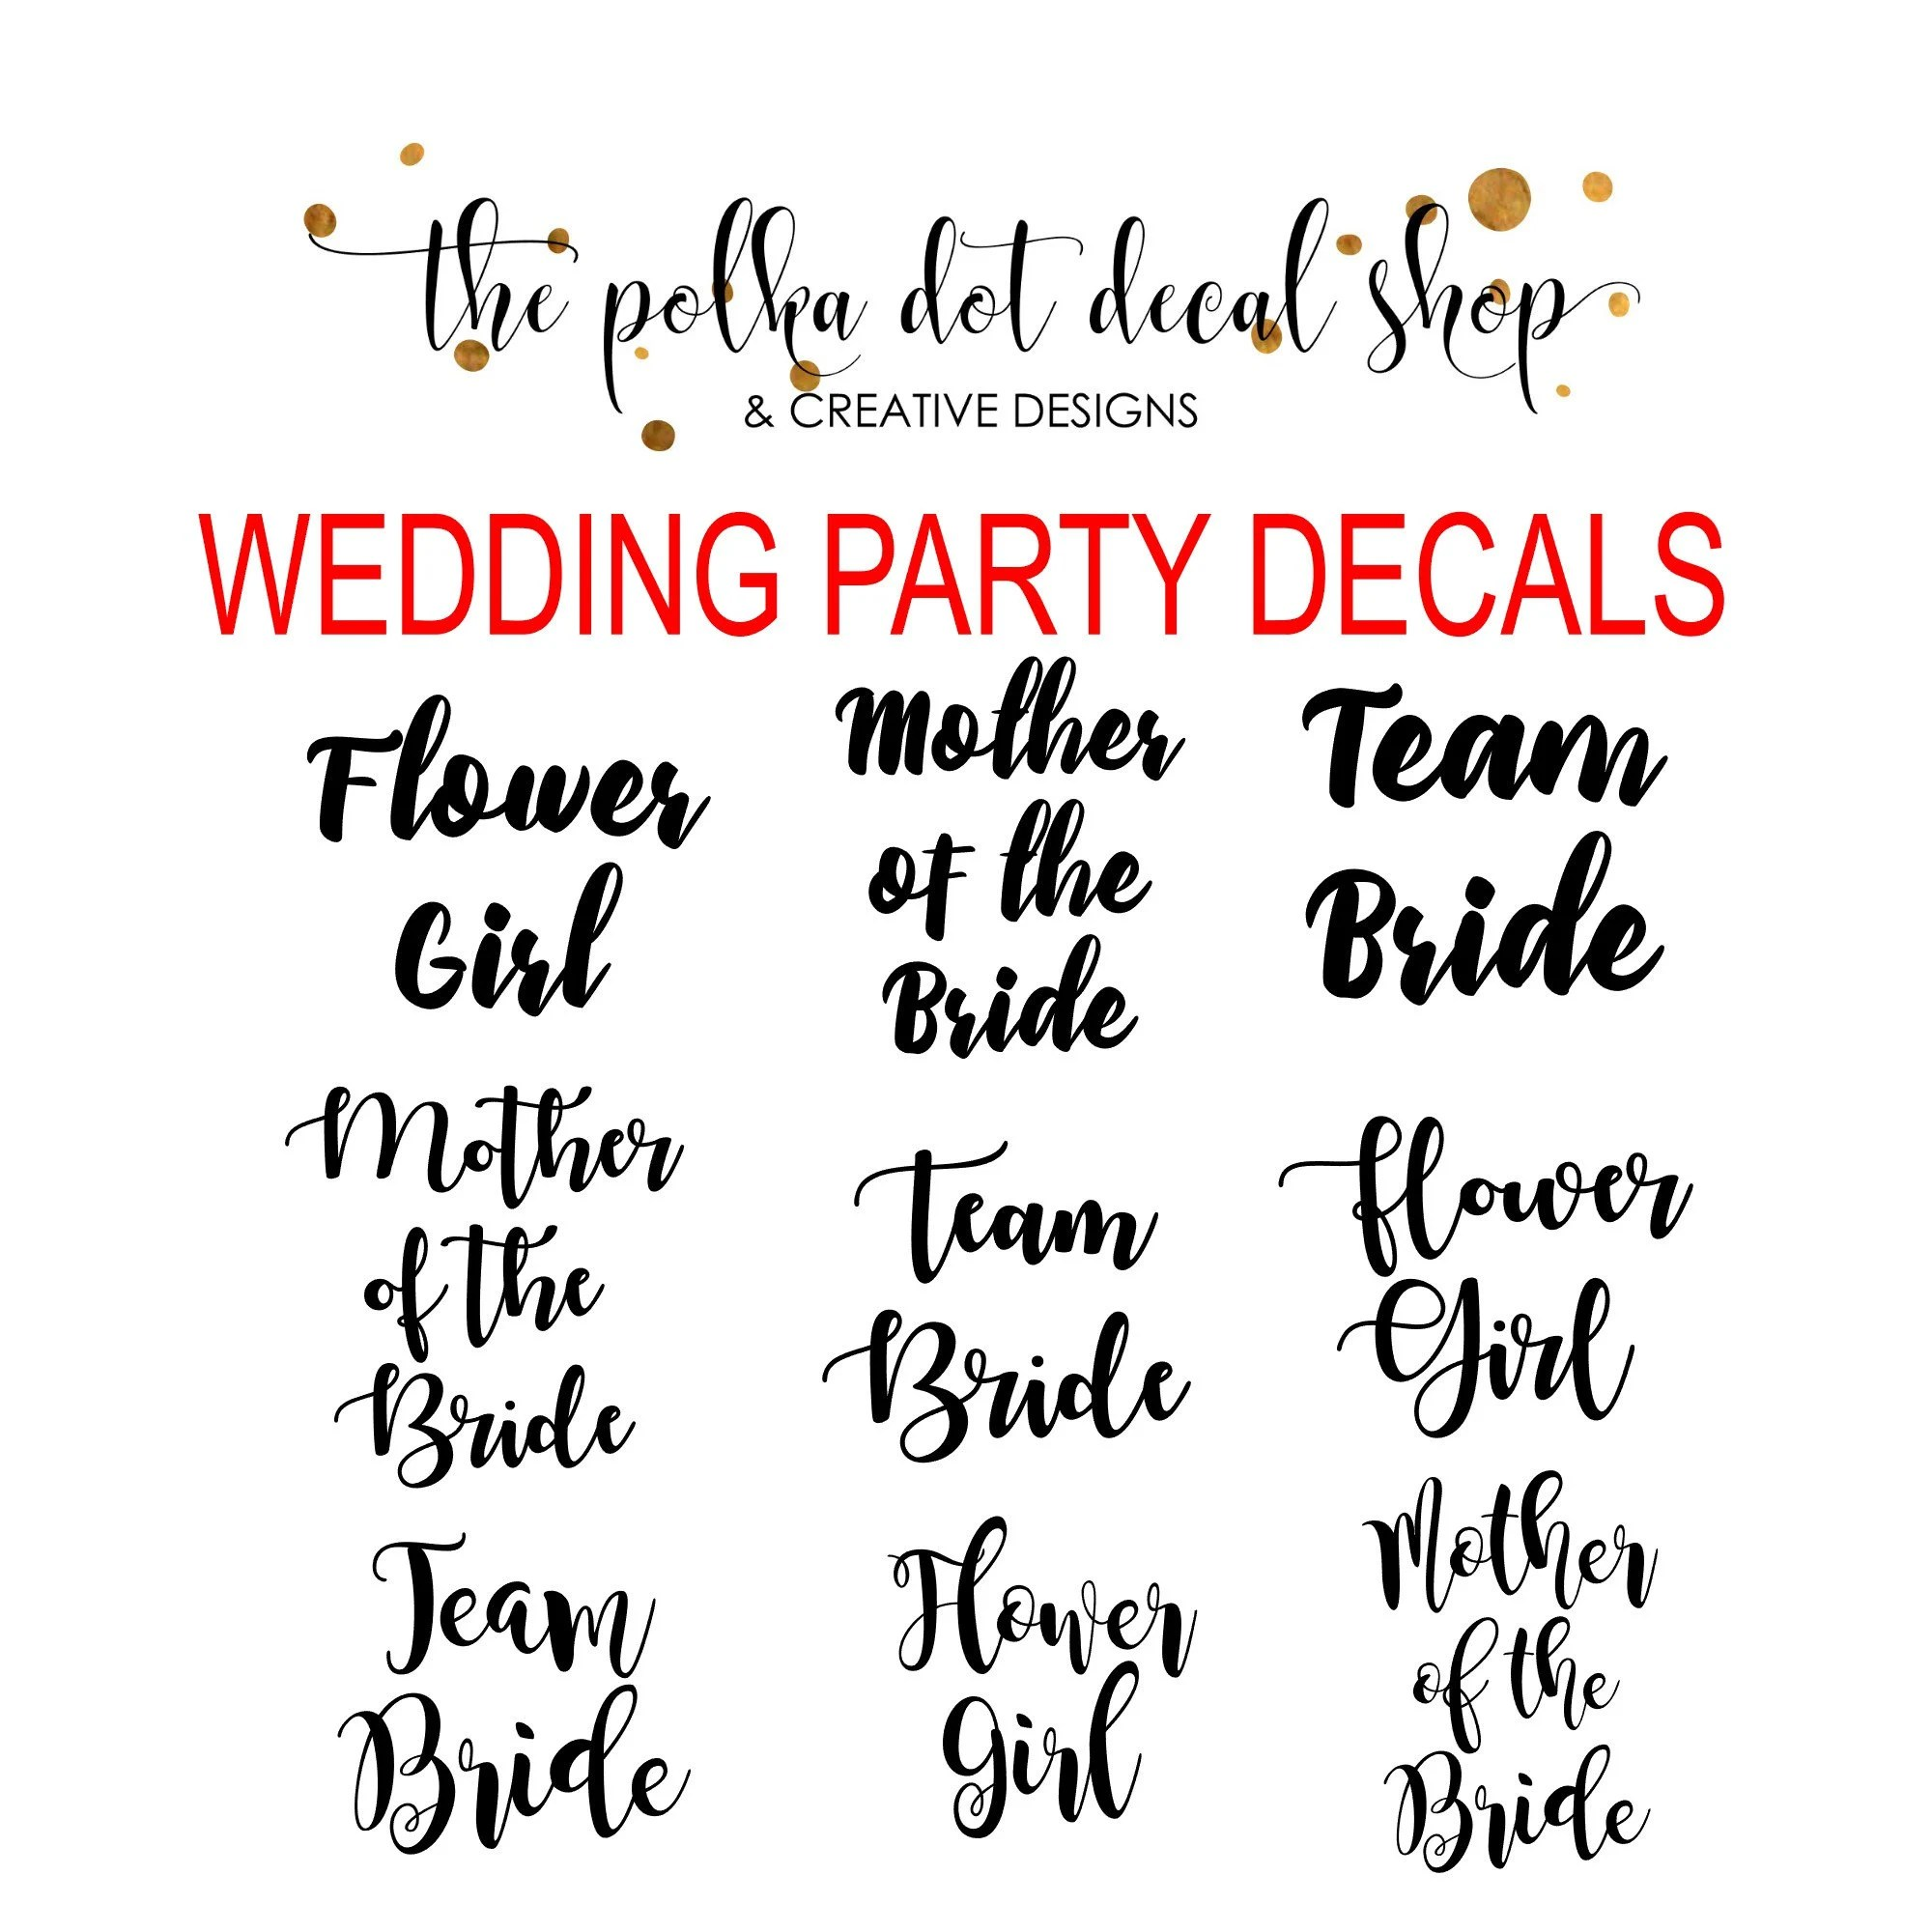 wedding party decals bridesmaid decal maid of honor decal image 2